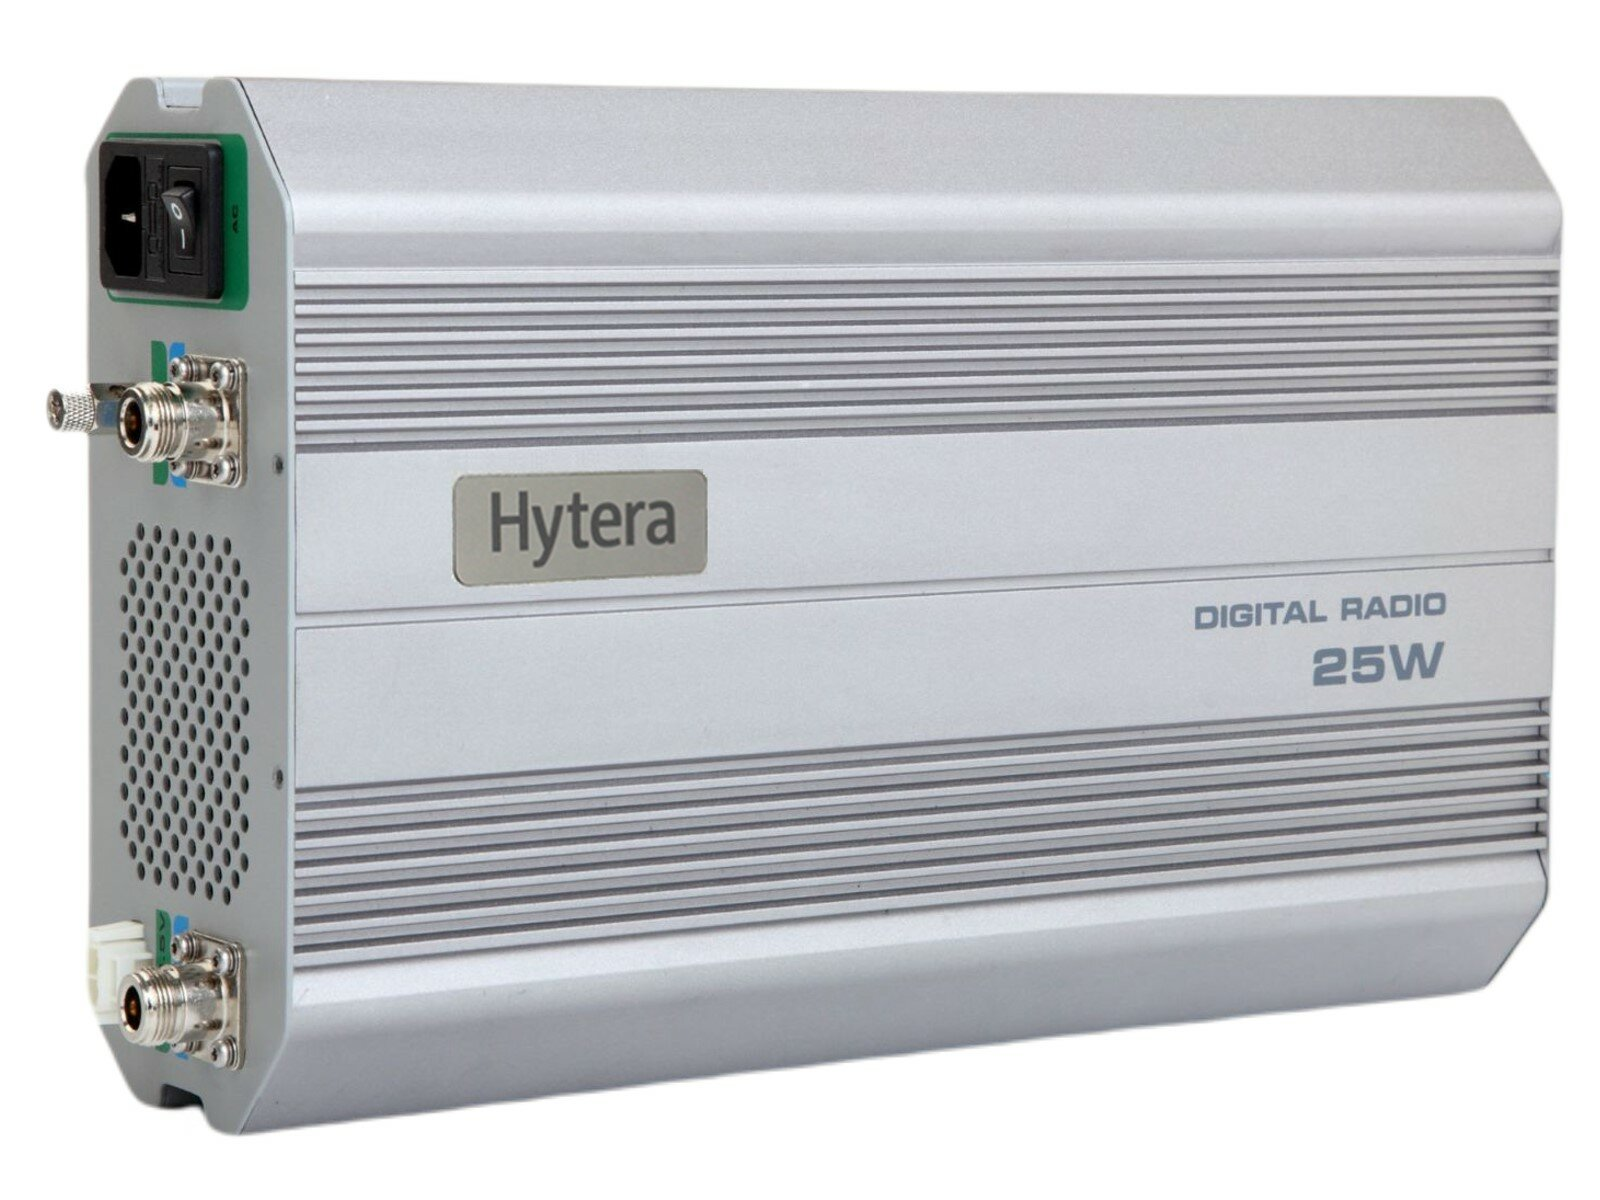 Hytera RD625 DMR Compact Repeater